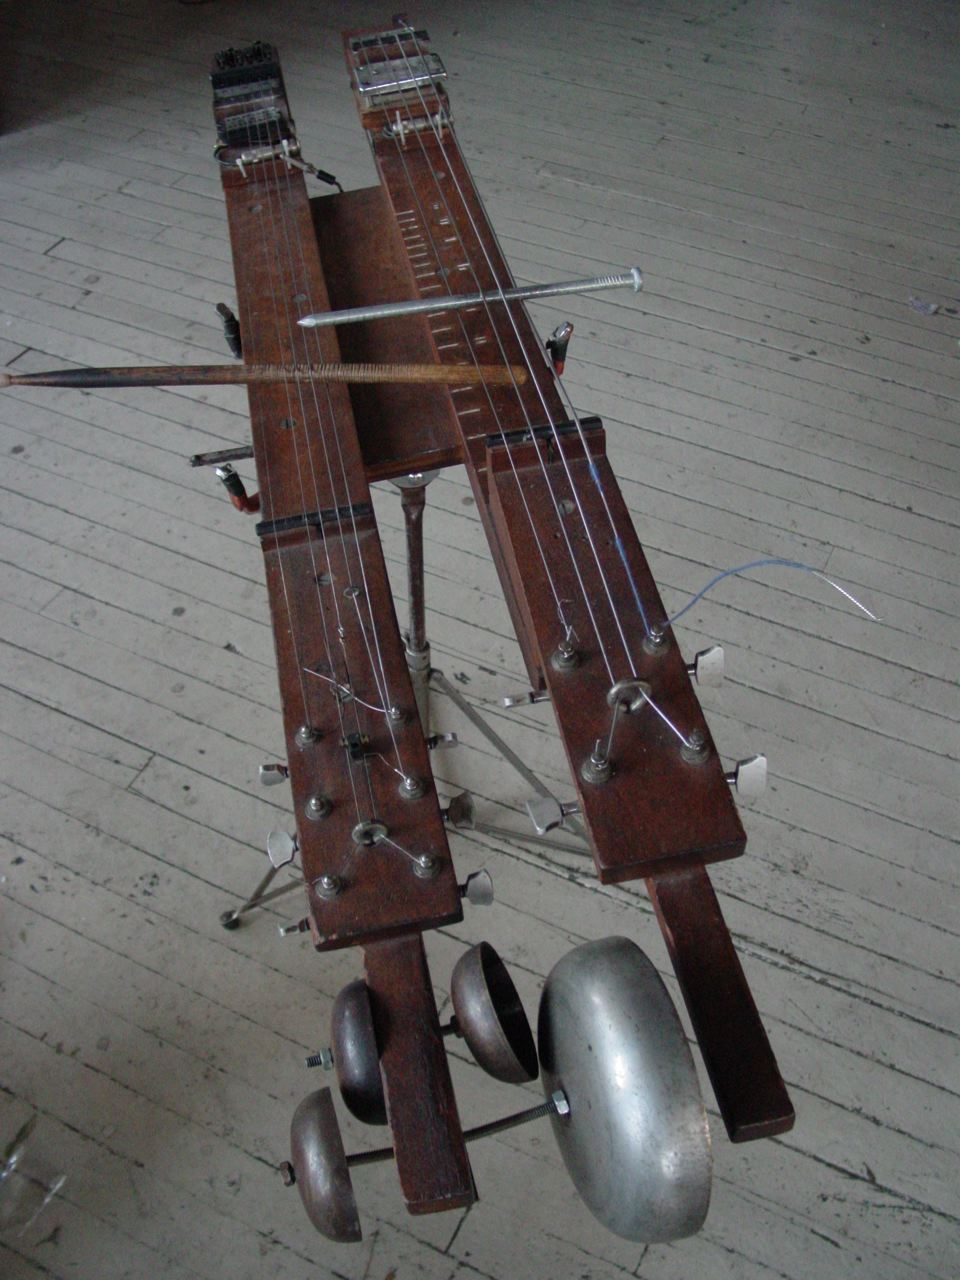 Pencillina, an experimental musical instrument